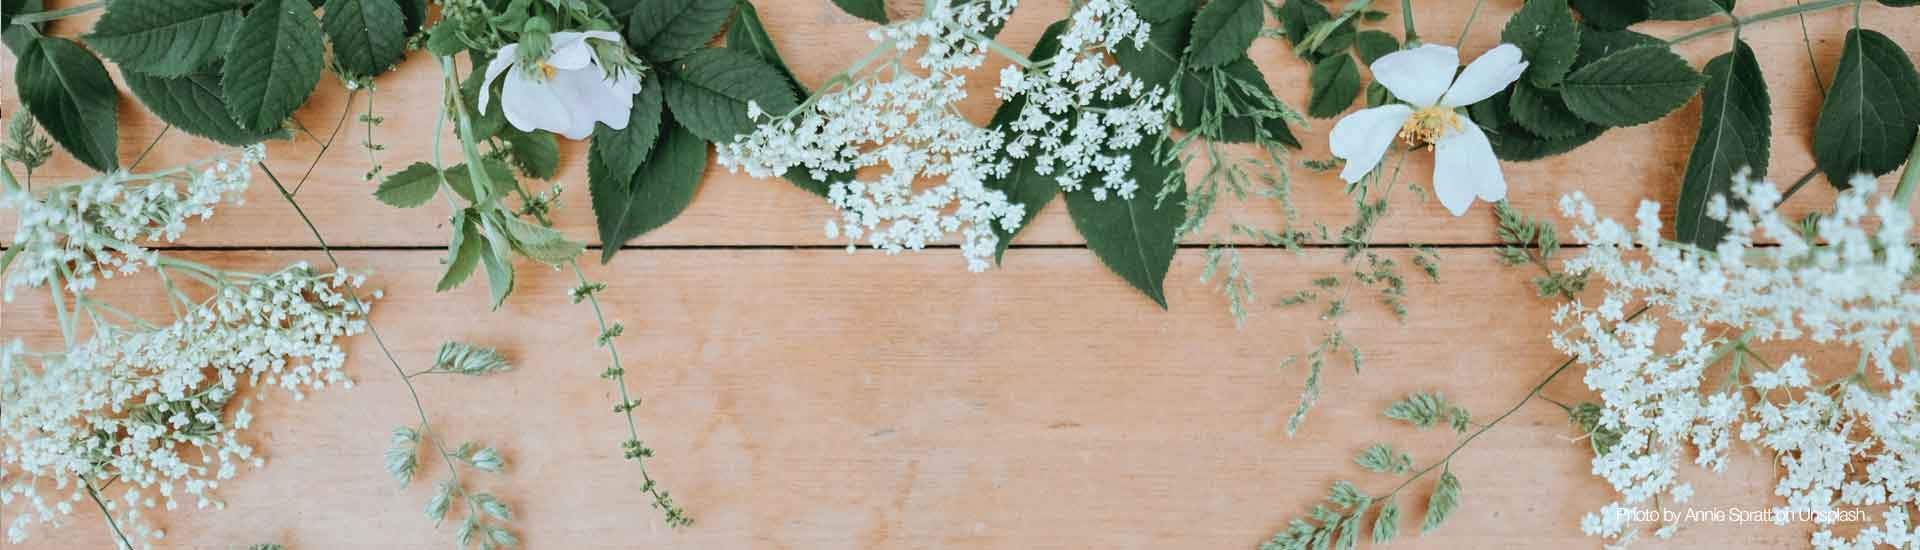 How To Choose Flowers For A Funeral Sydney Coffins